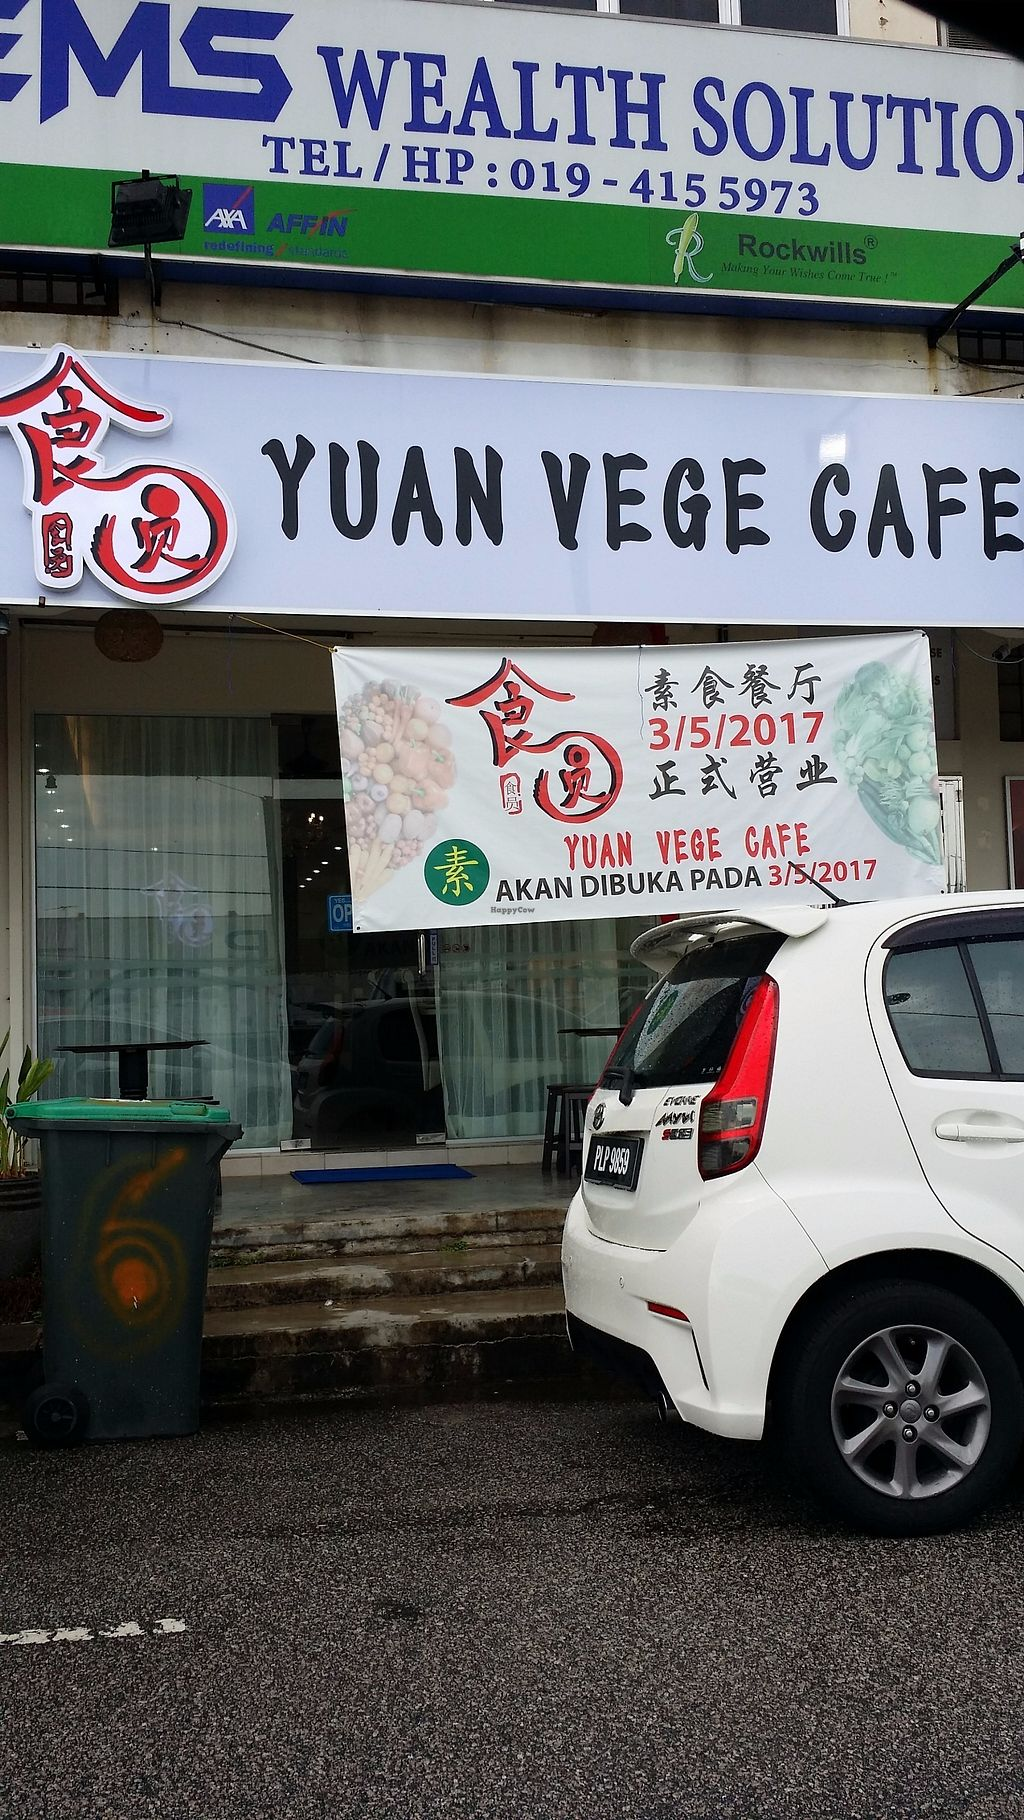 """Photo of Yuan Vege Cafe  by <a href=""""/members/profile/walter007"""">walter007</a> <br/>new owner with new name <br/> September 10, 2017  - <a href='/contact/abuse/image/59484/302887'>Report</a>"""